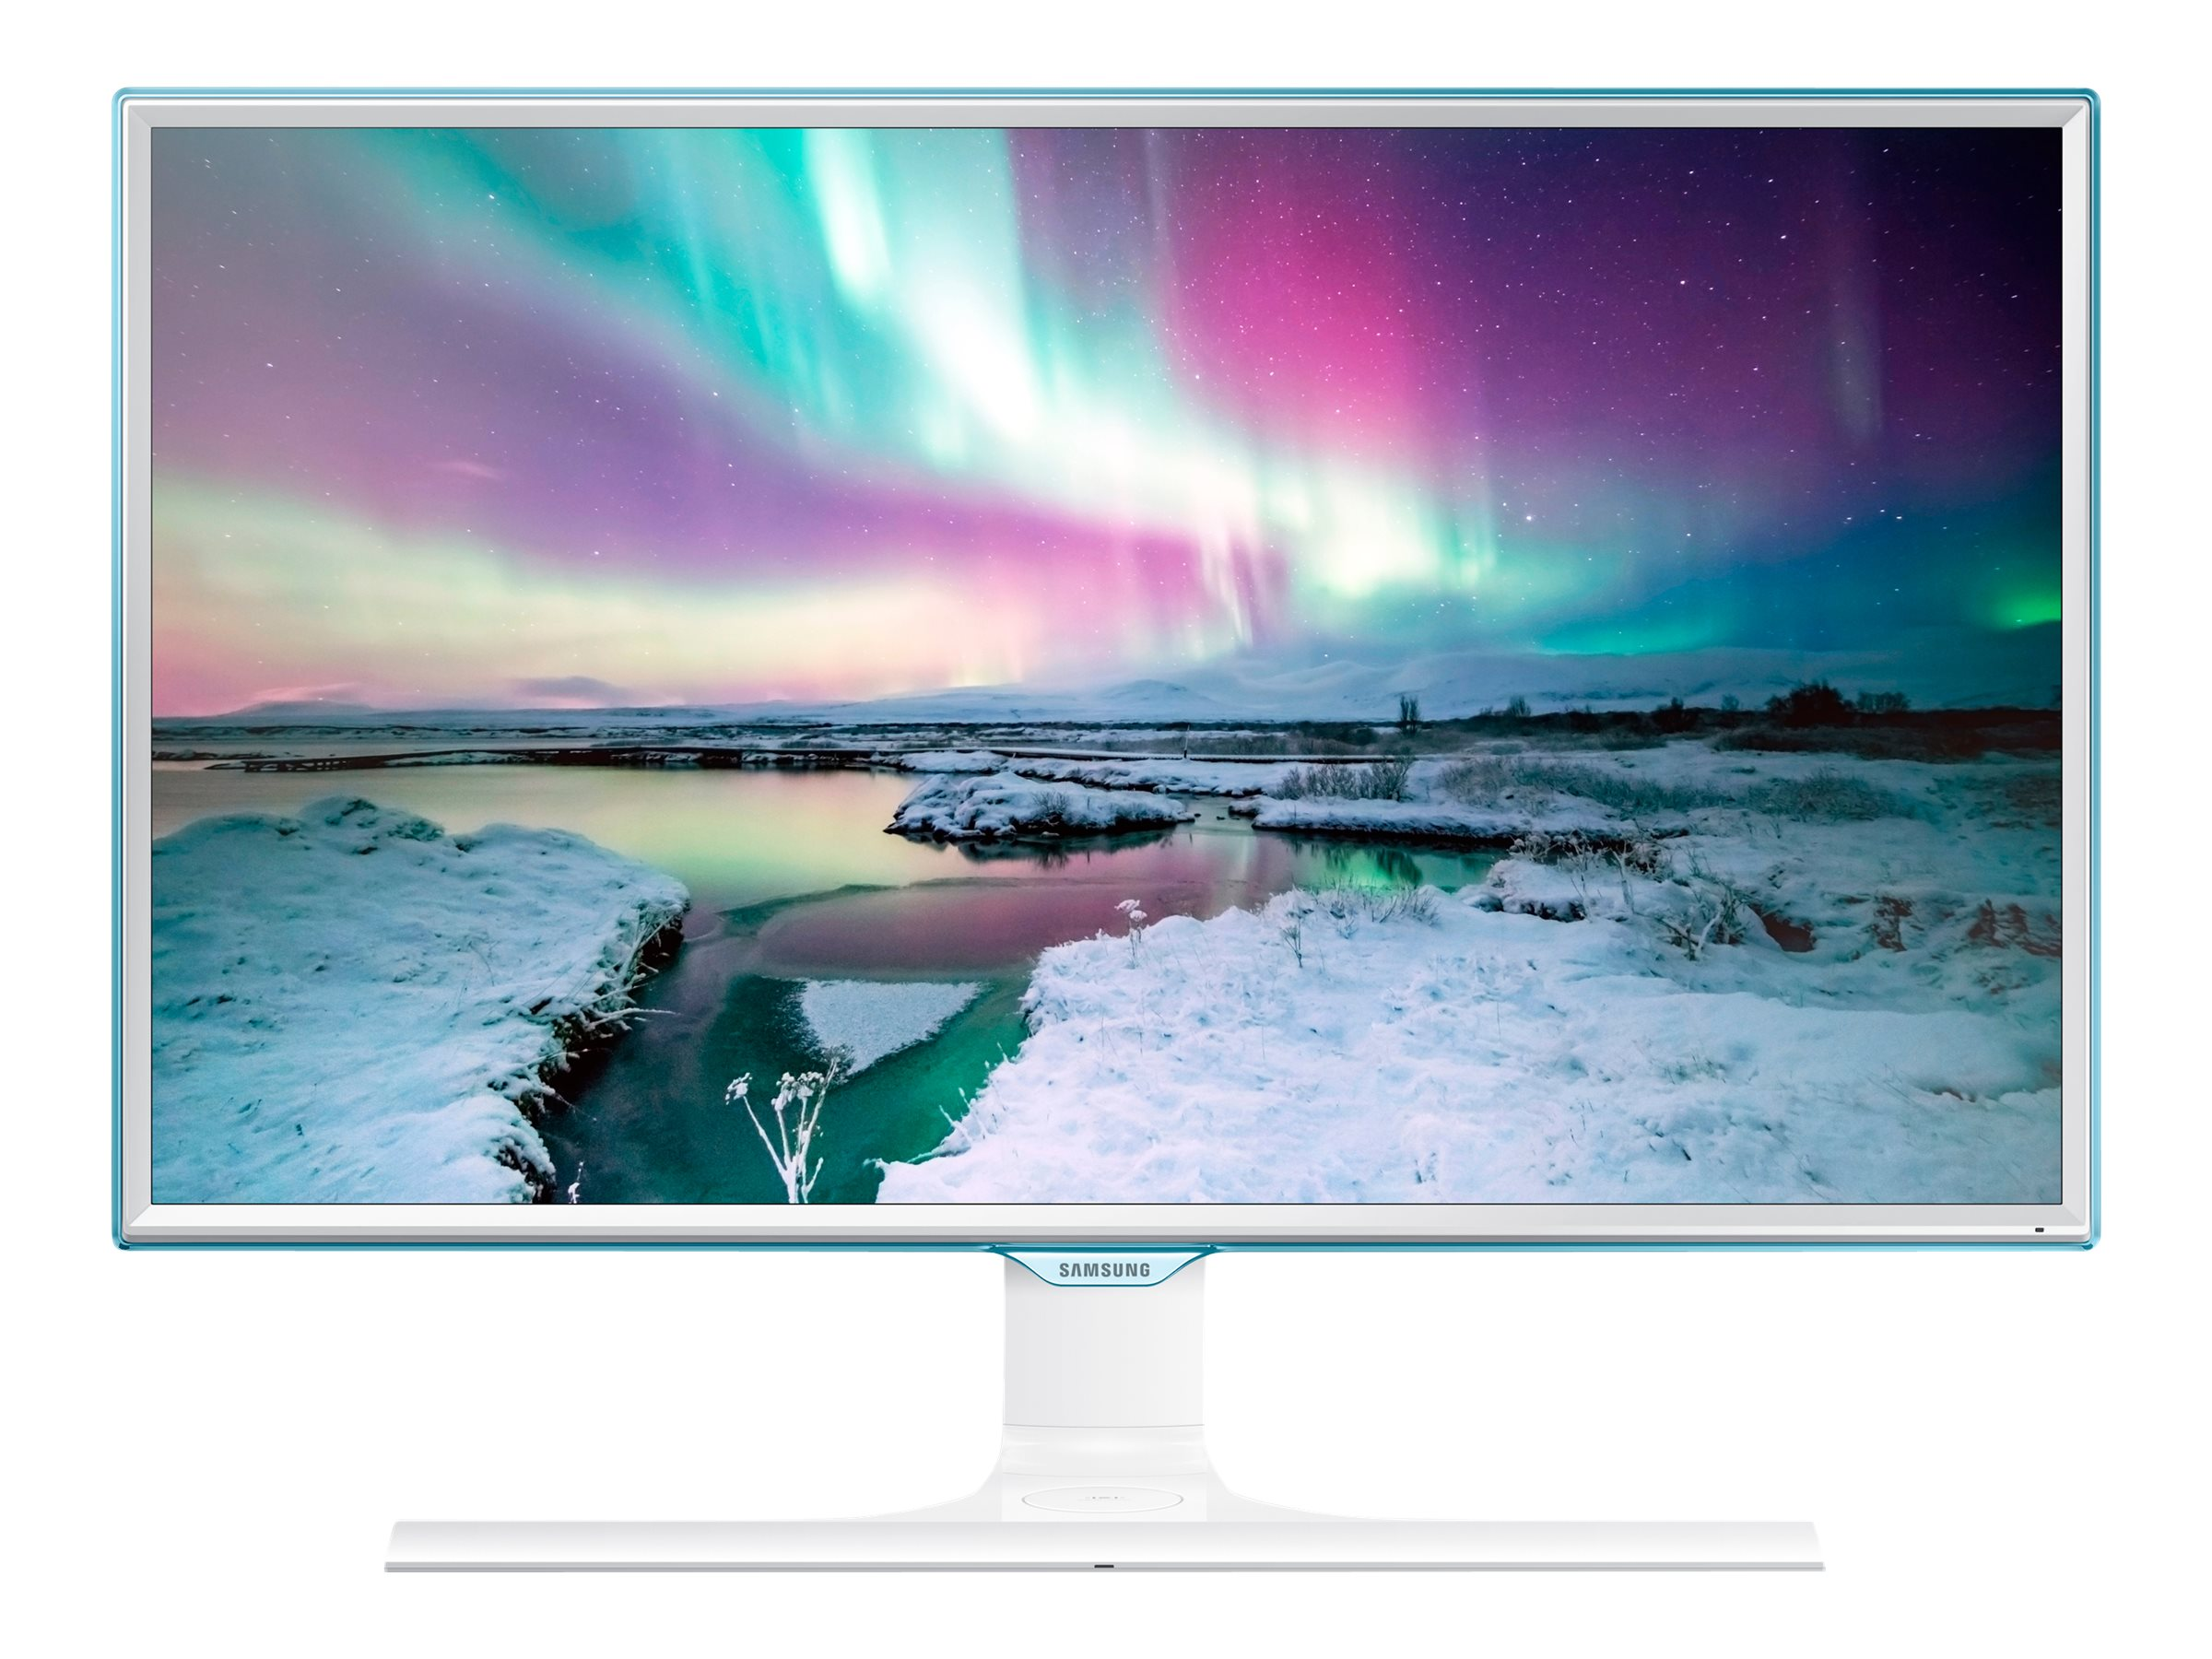 Samsung 23.6 SE370 LED Monitor with Wireless Charging, White